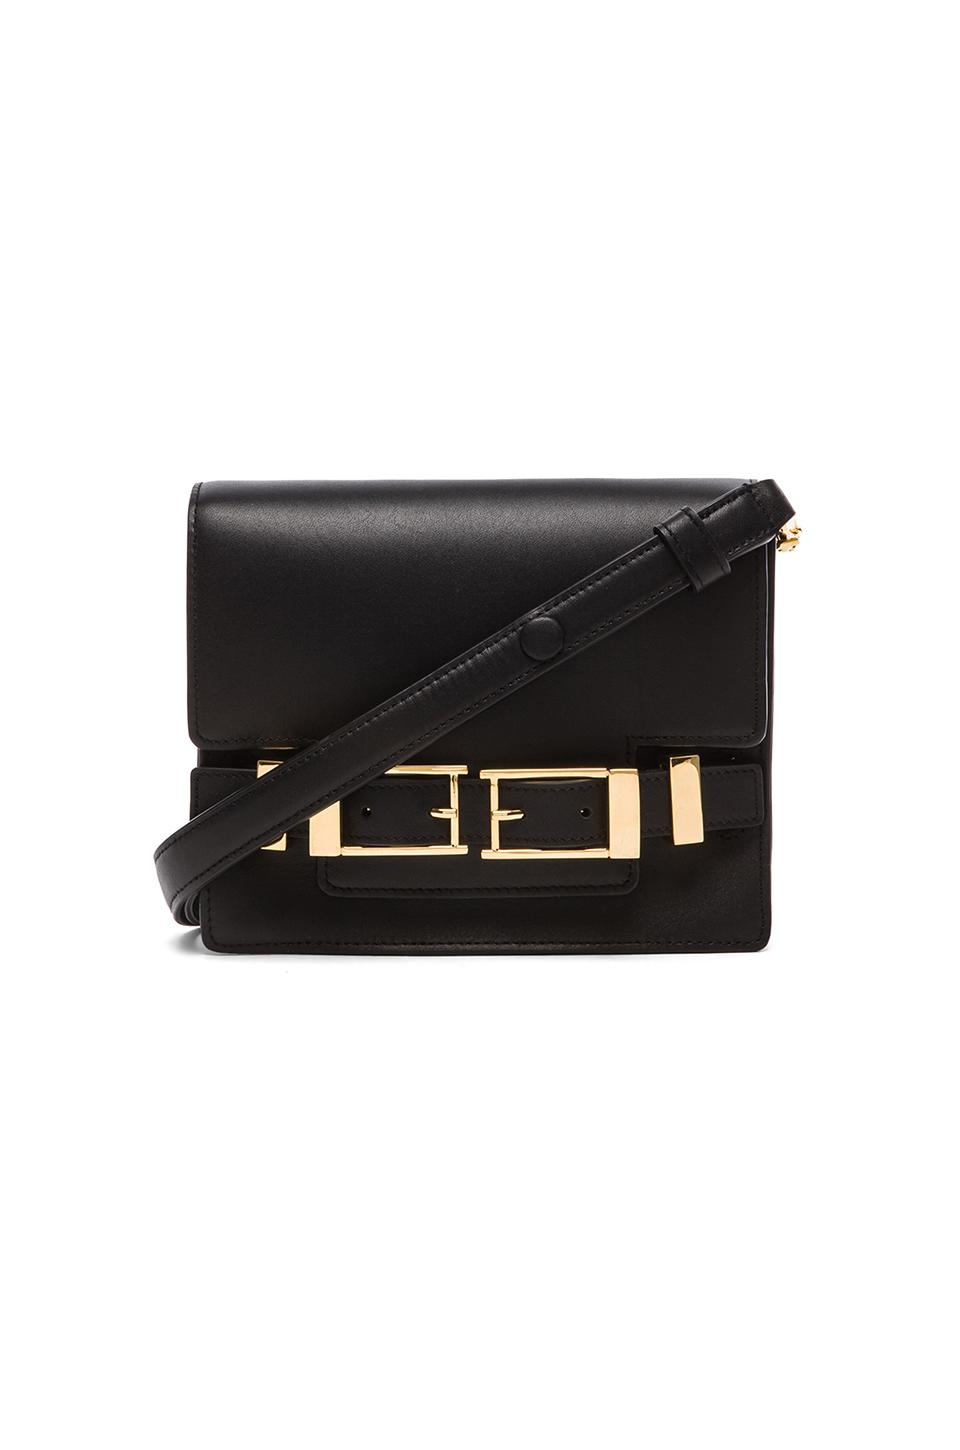 A.L.C. Davenport Clutch in Black